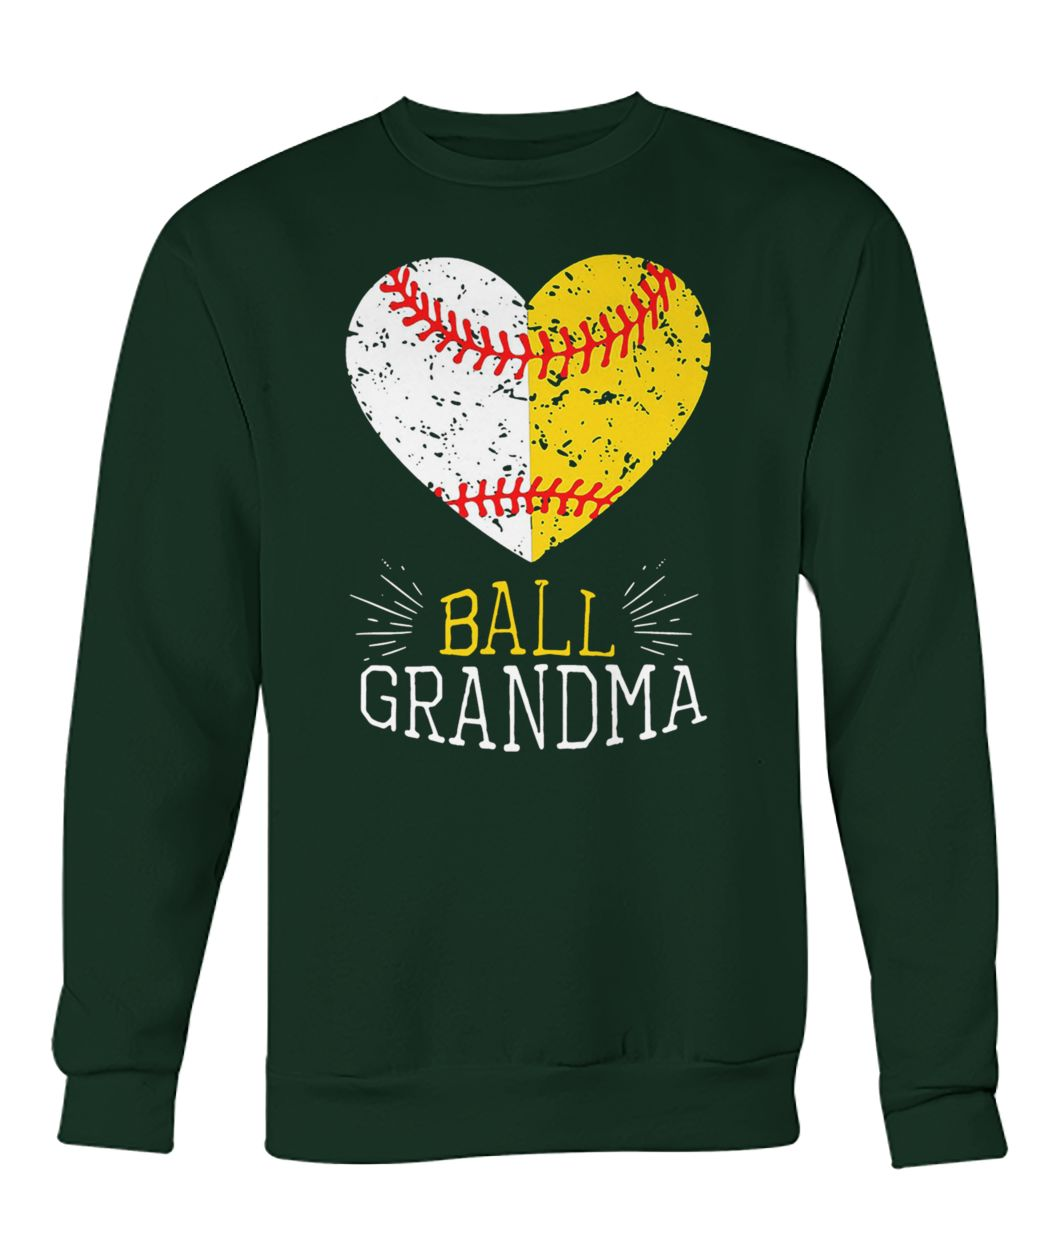 Ball grandma softball or baseball crew neck sweatshirt